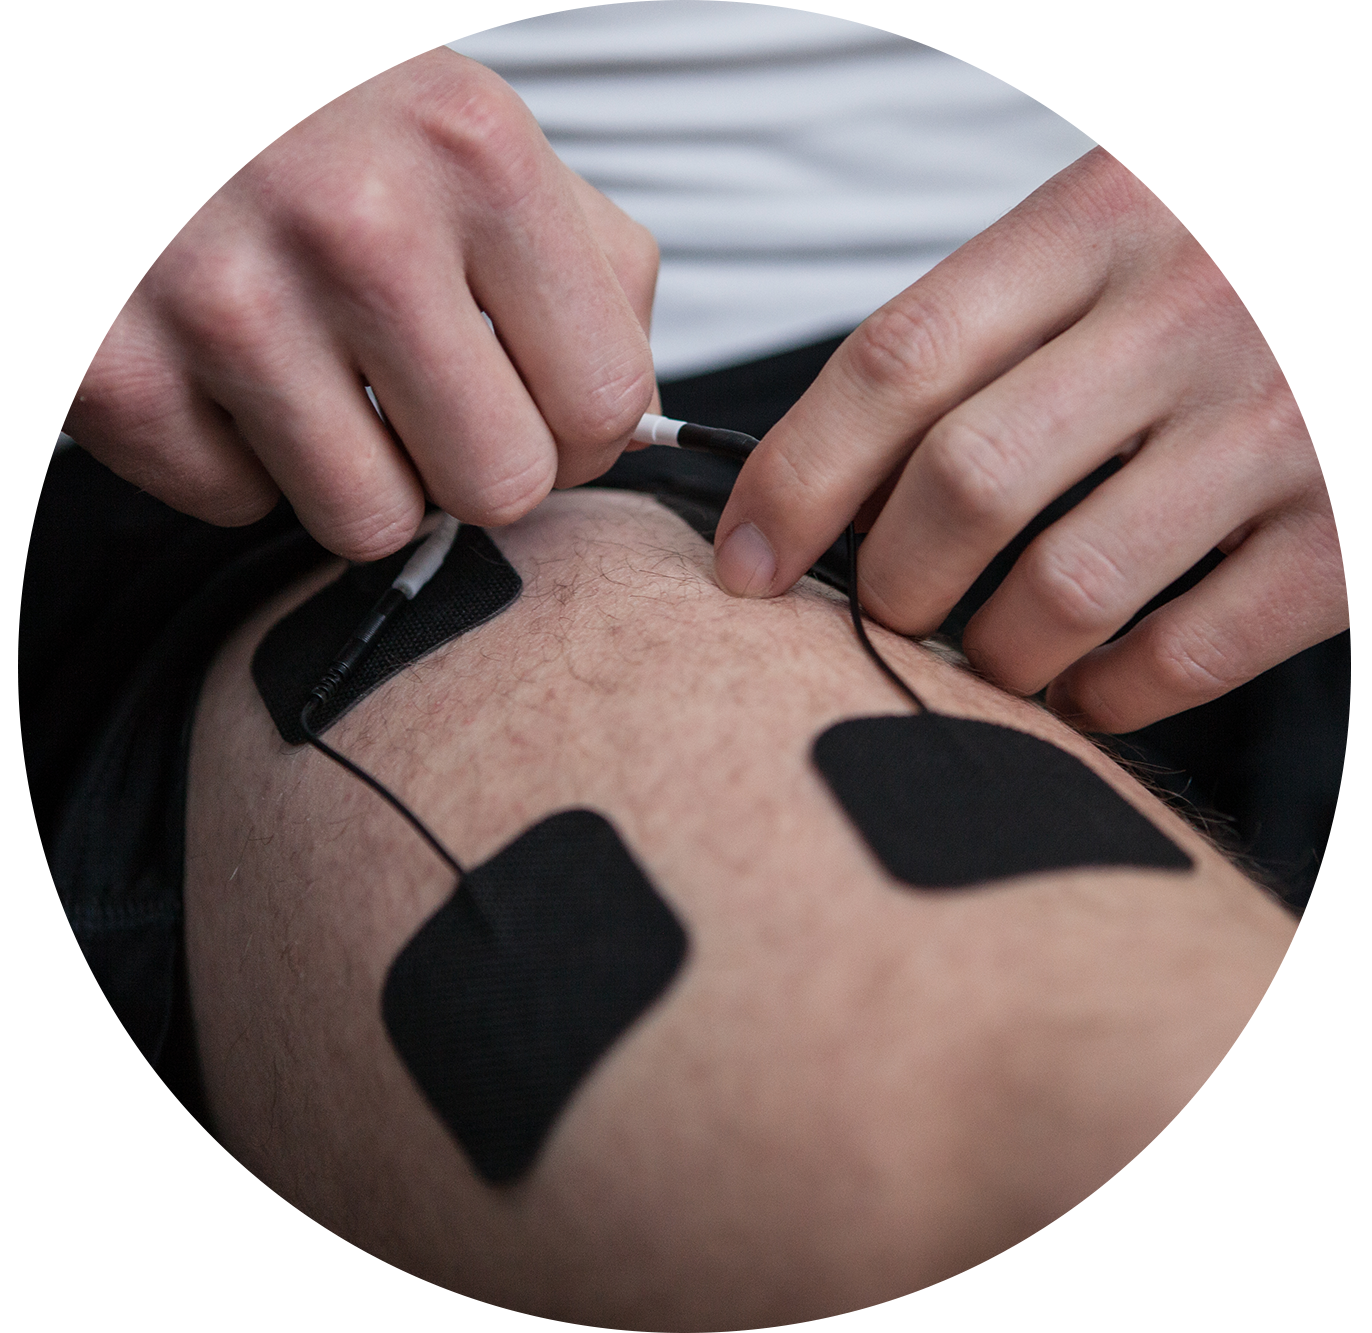 TENS pad placement for quad/thigh pain